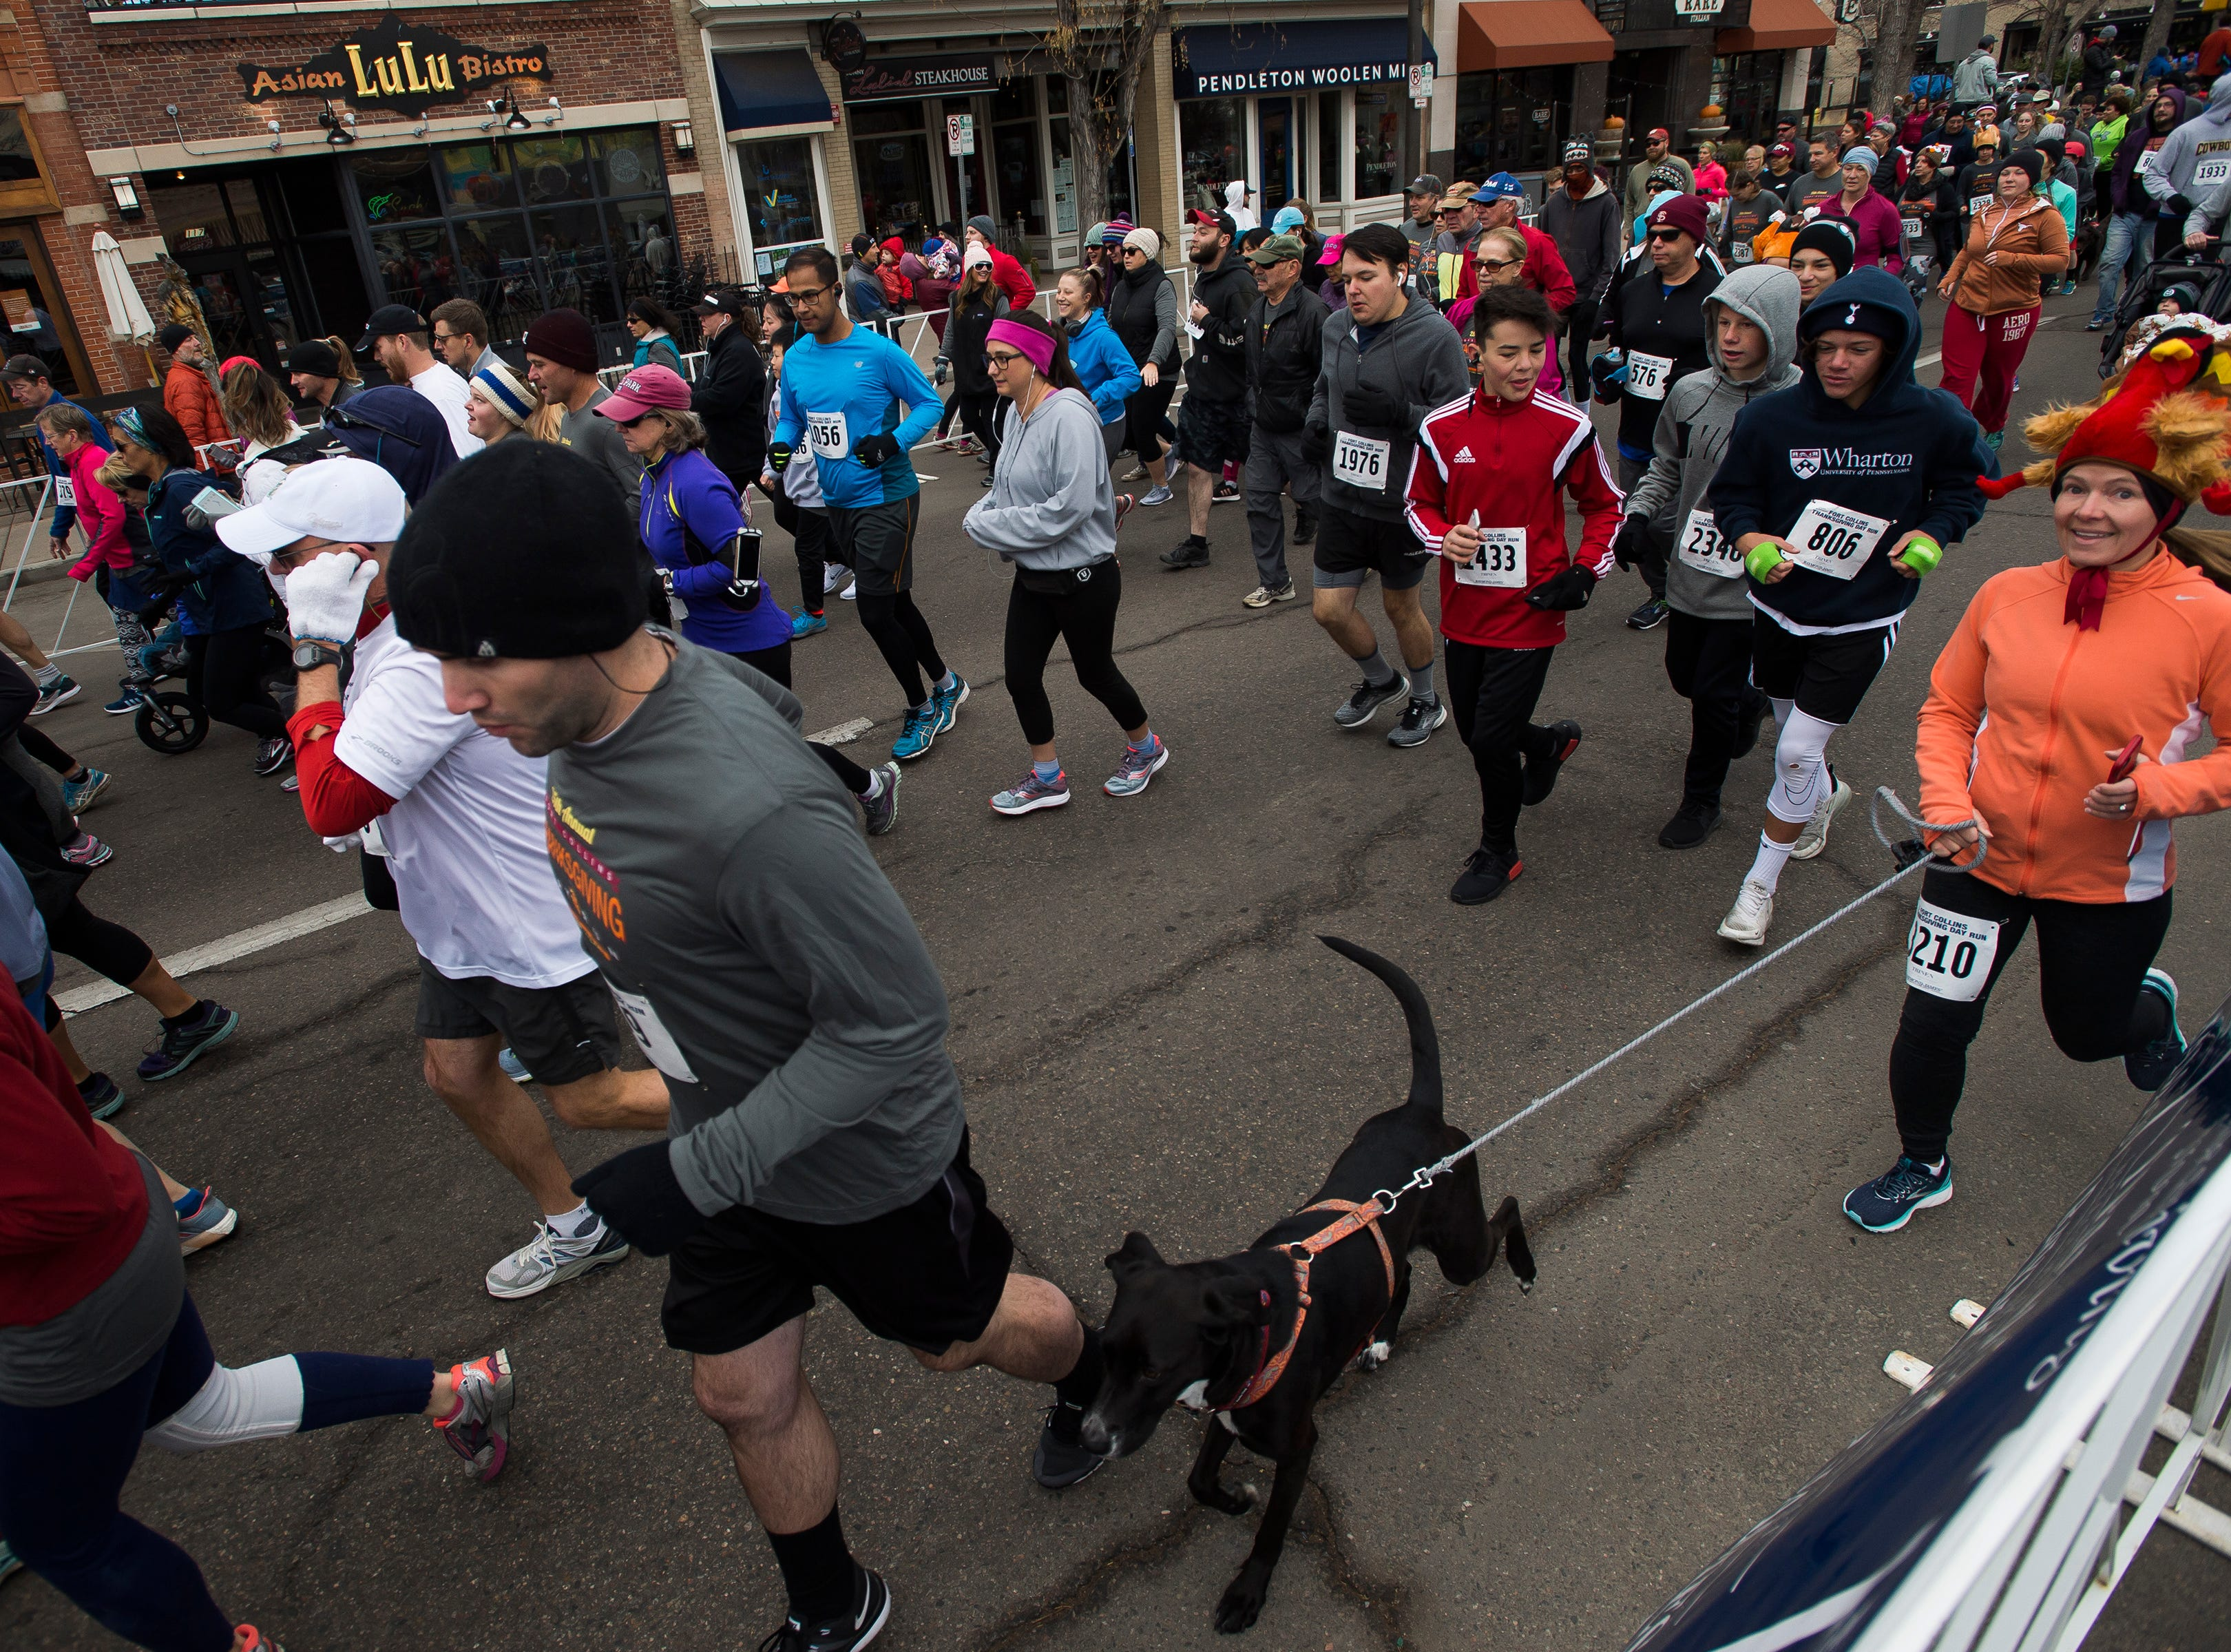 Runners participate during the Fort Collins Thanksgiving Day Run on Thursday, Nov. 22, 2018, in Old Town Fort Collins, Colo.